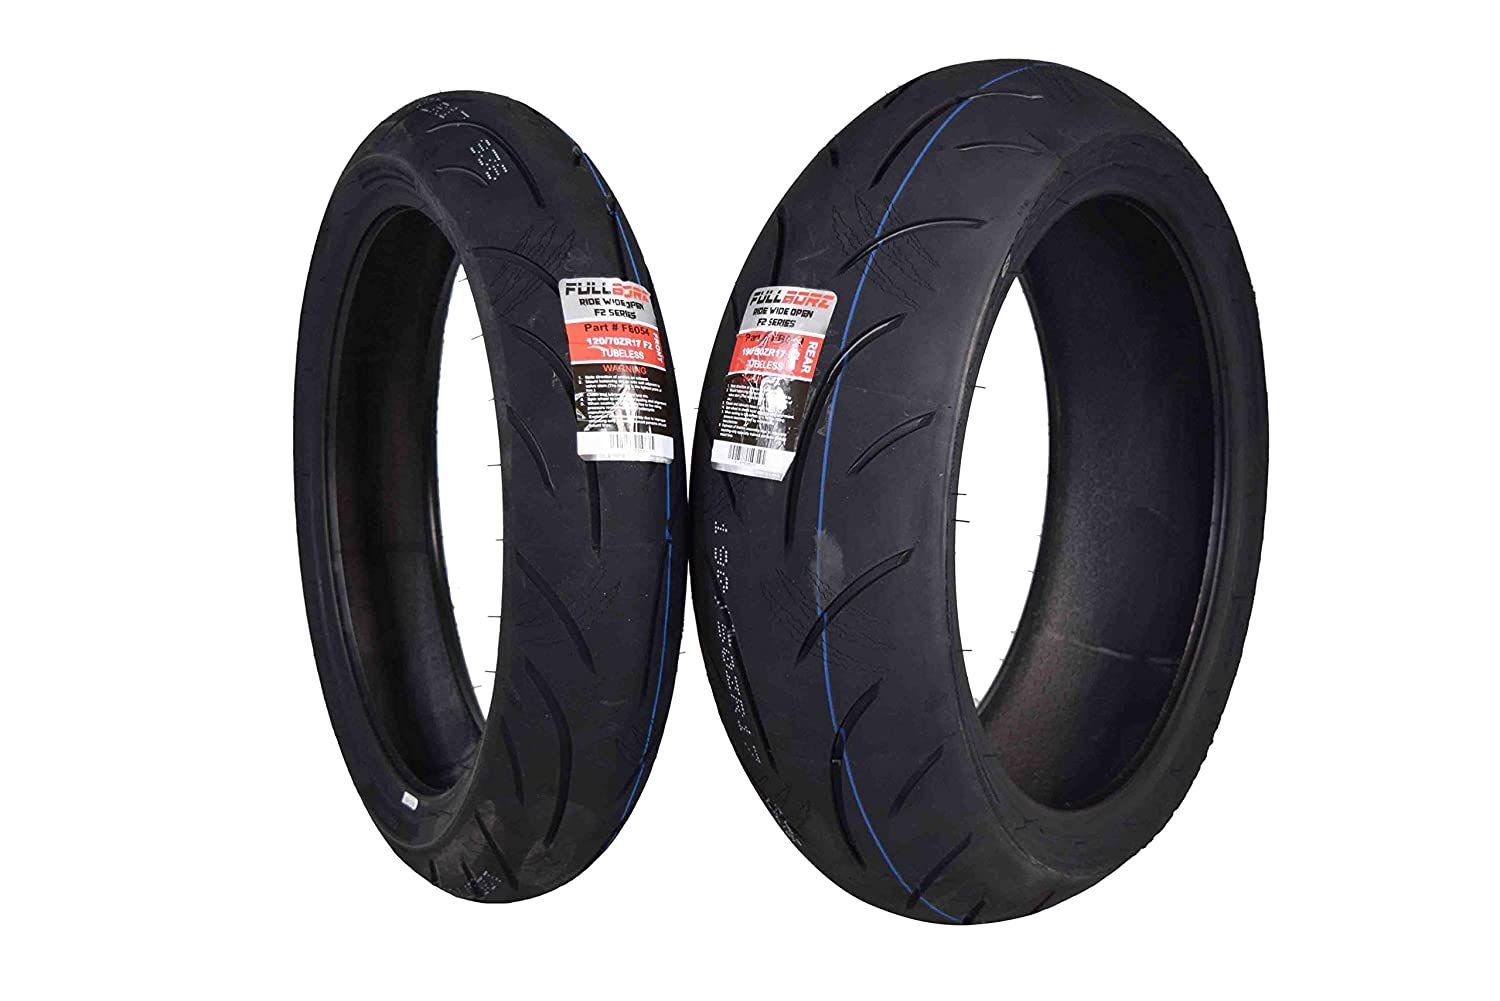 Full Bore Super Bike F2 Tire Set 1 Front 120 70zr17 And 1 Rear 190 50zr17 Pair Tires 120 70 17 190 Sports Bikes Motorcycles Automotive Tires Motorcycle Tires